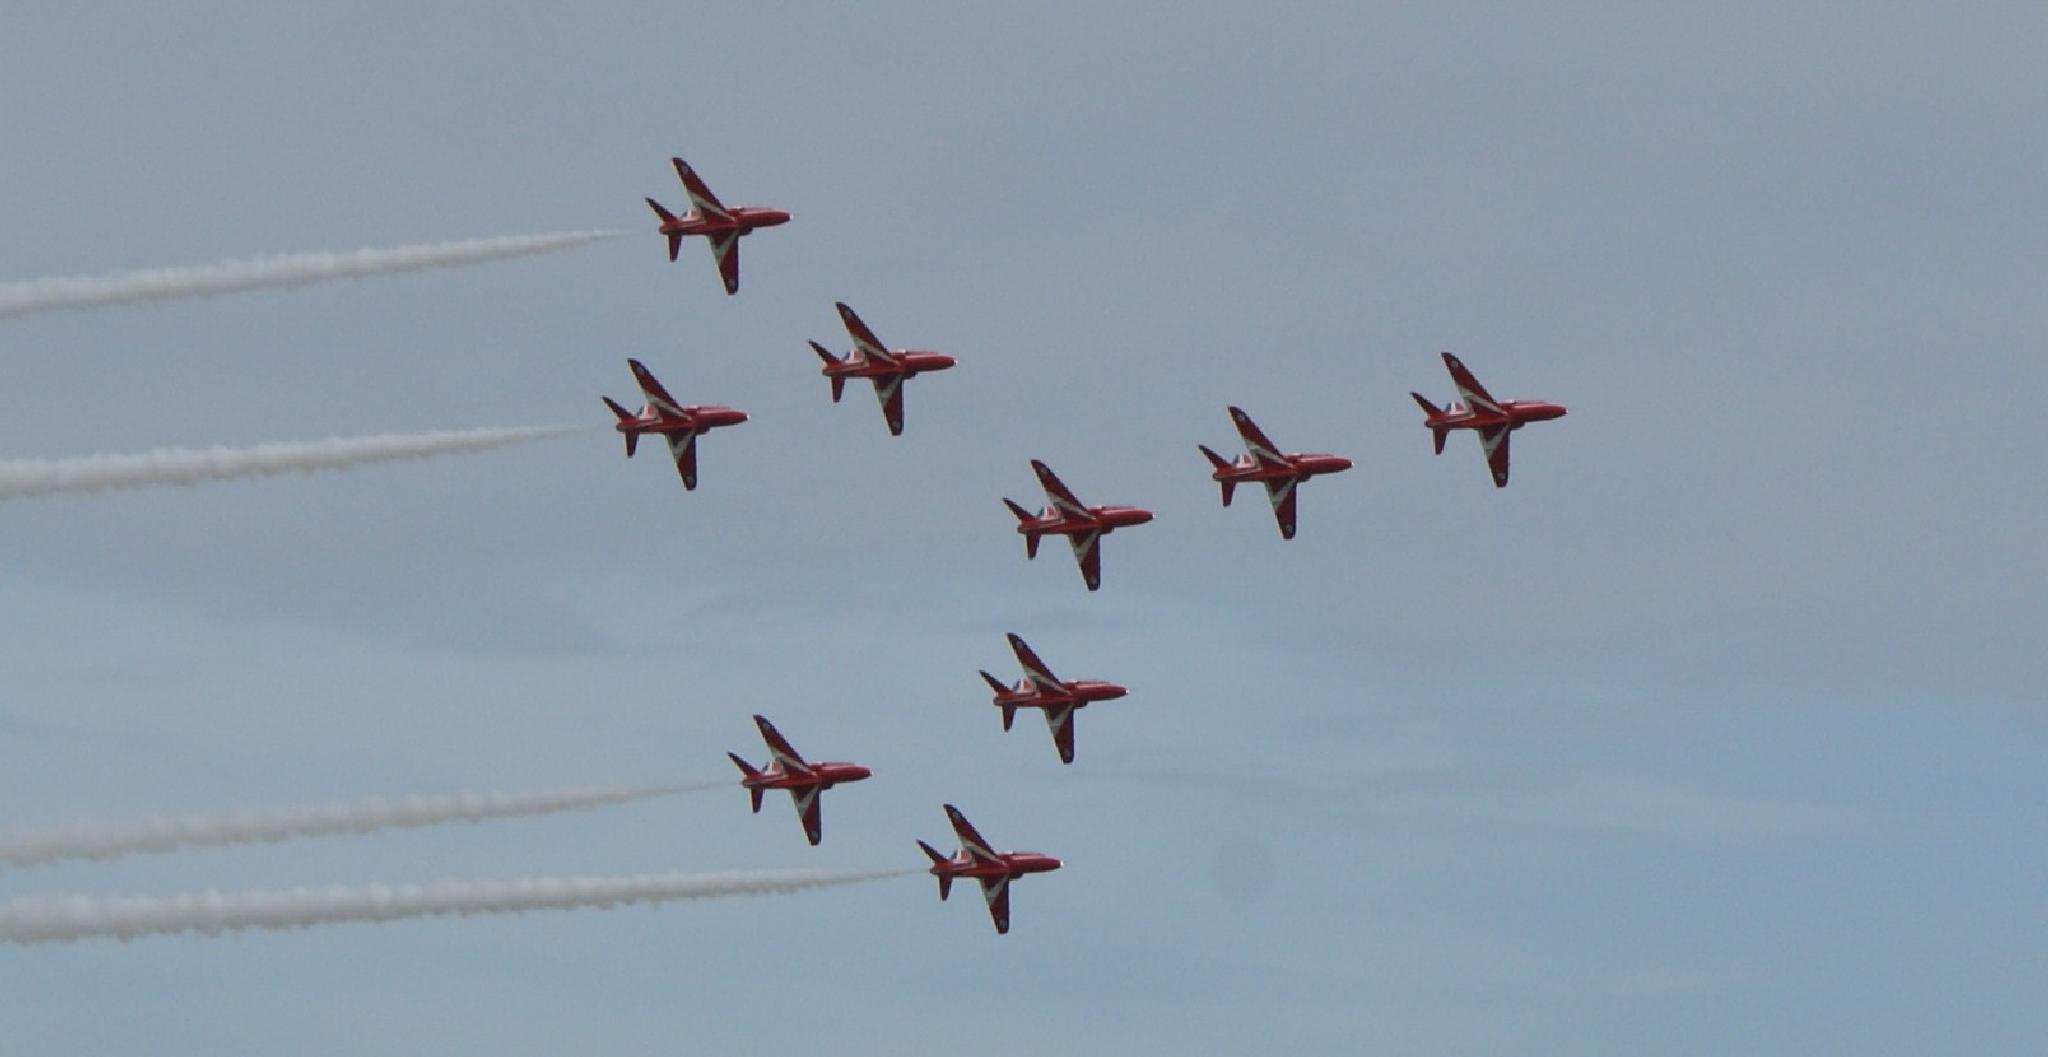 Red Arrows in Formation by george.mcmenemy.7